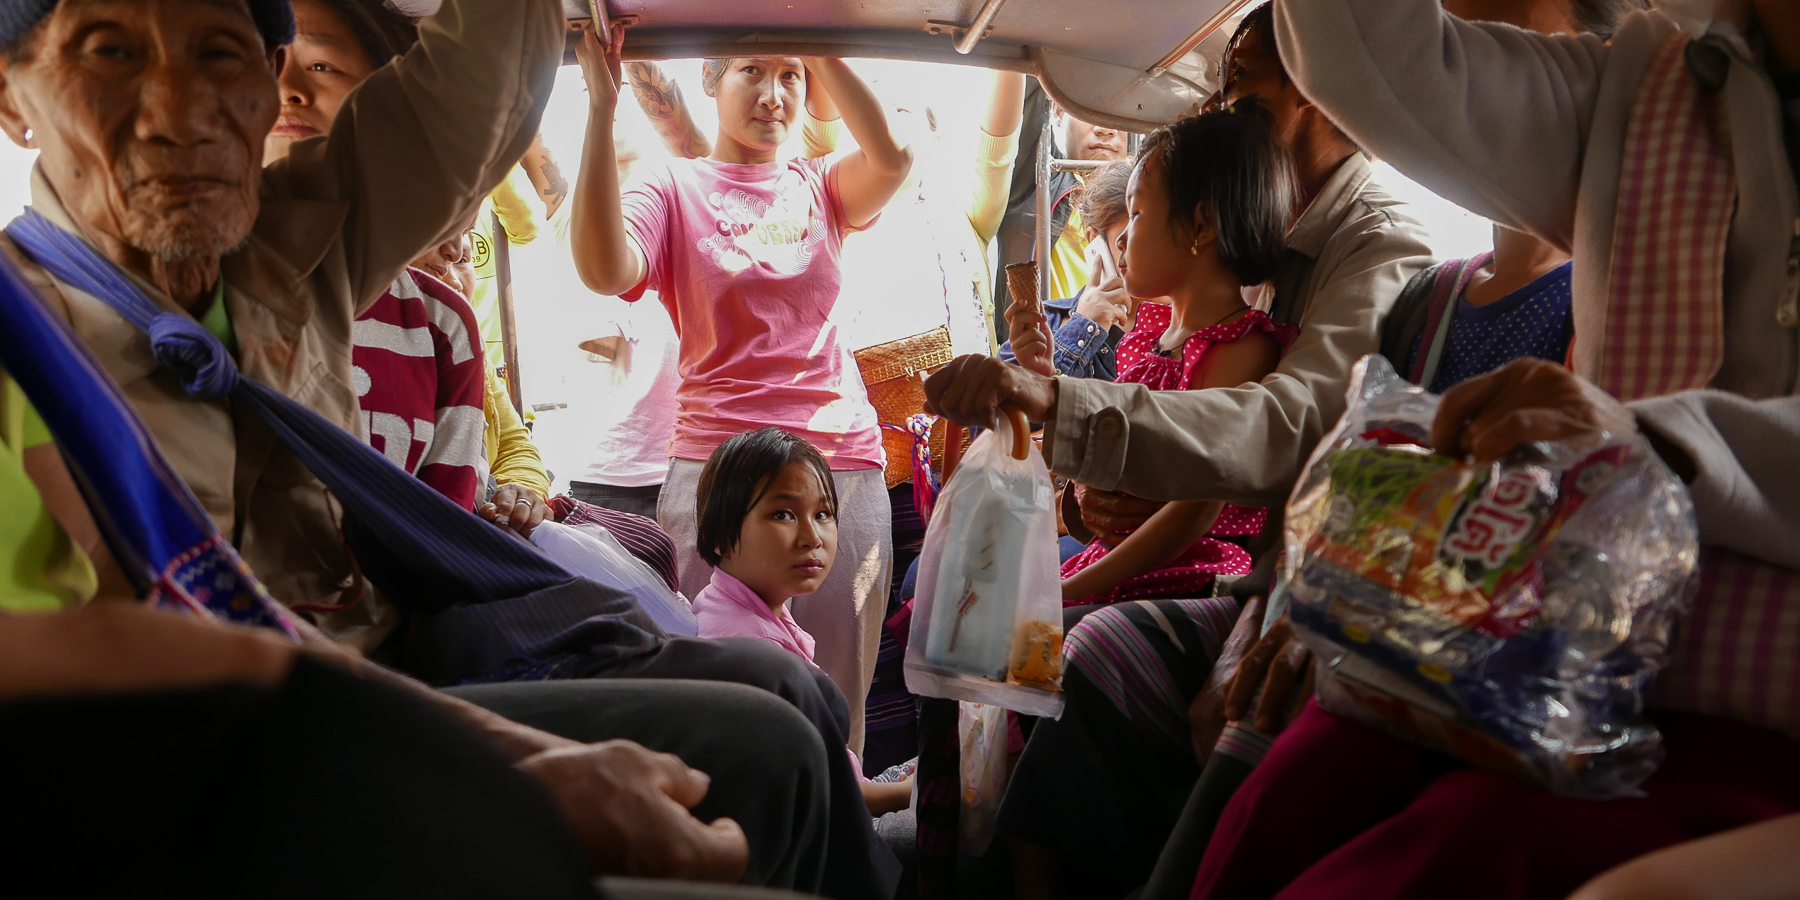 Passengers of a songthaew to Umphang, Death Highway, Northern Thailand (photo by Irina Stelea)